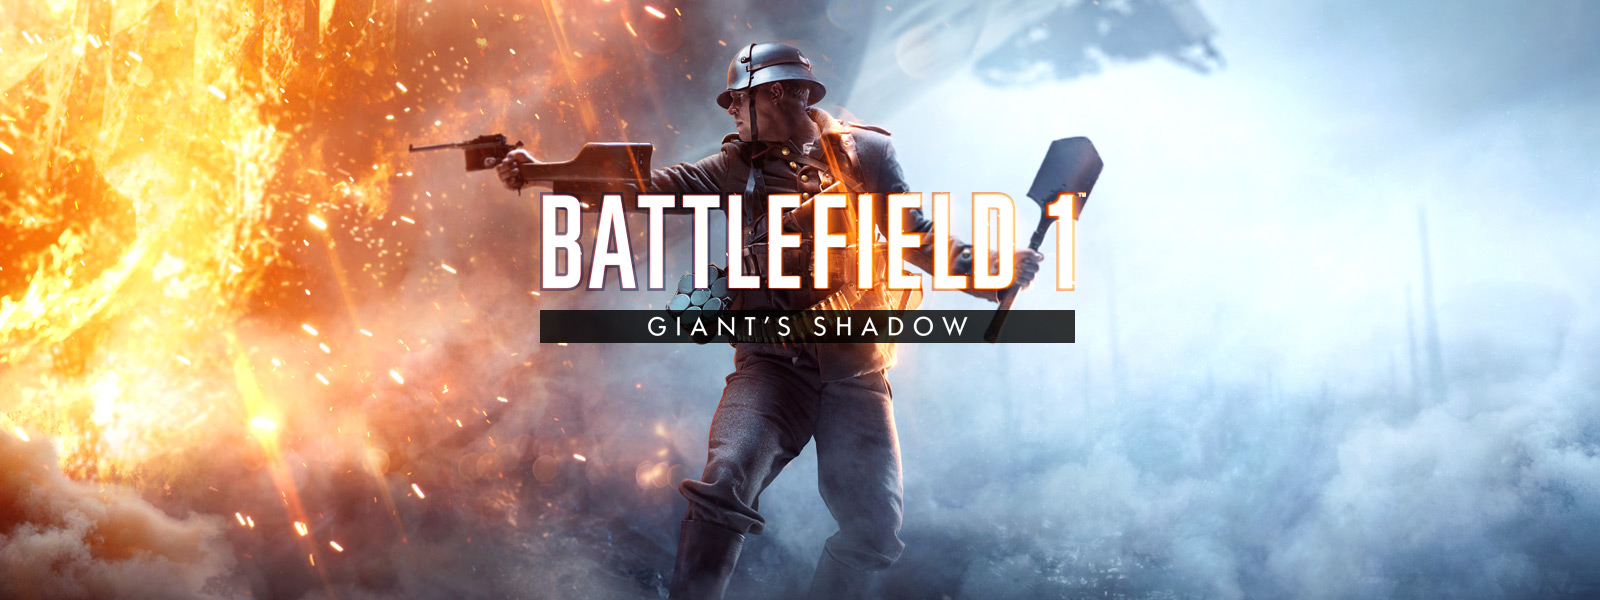 Battlefield 1 DLC - Giants Shadow